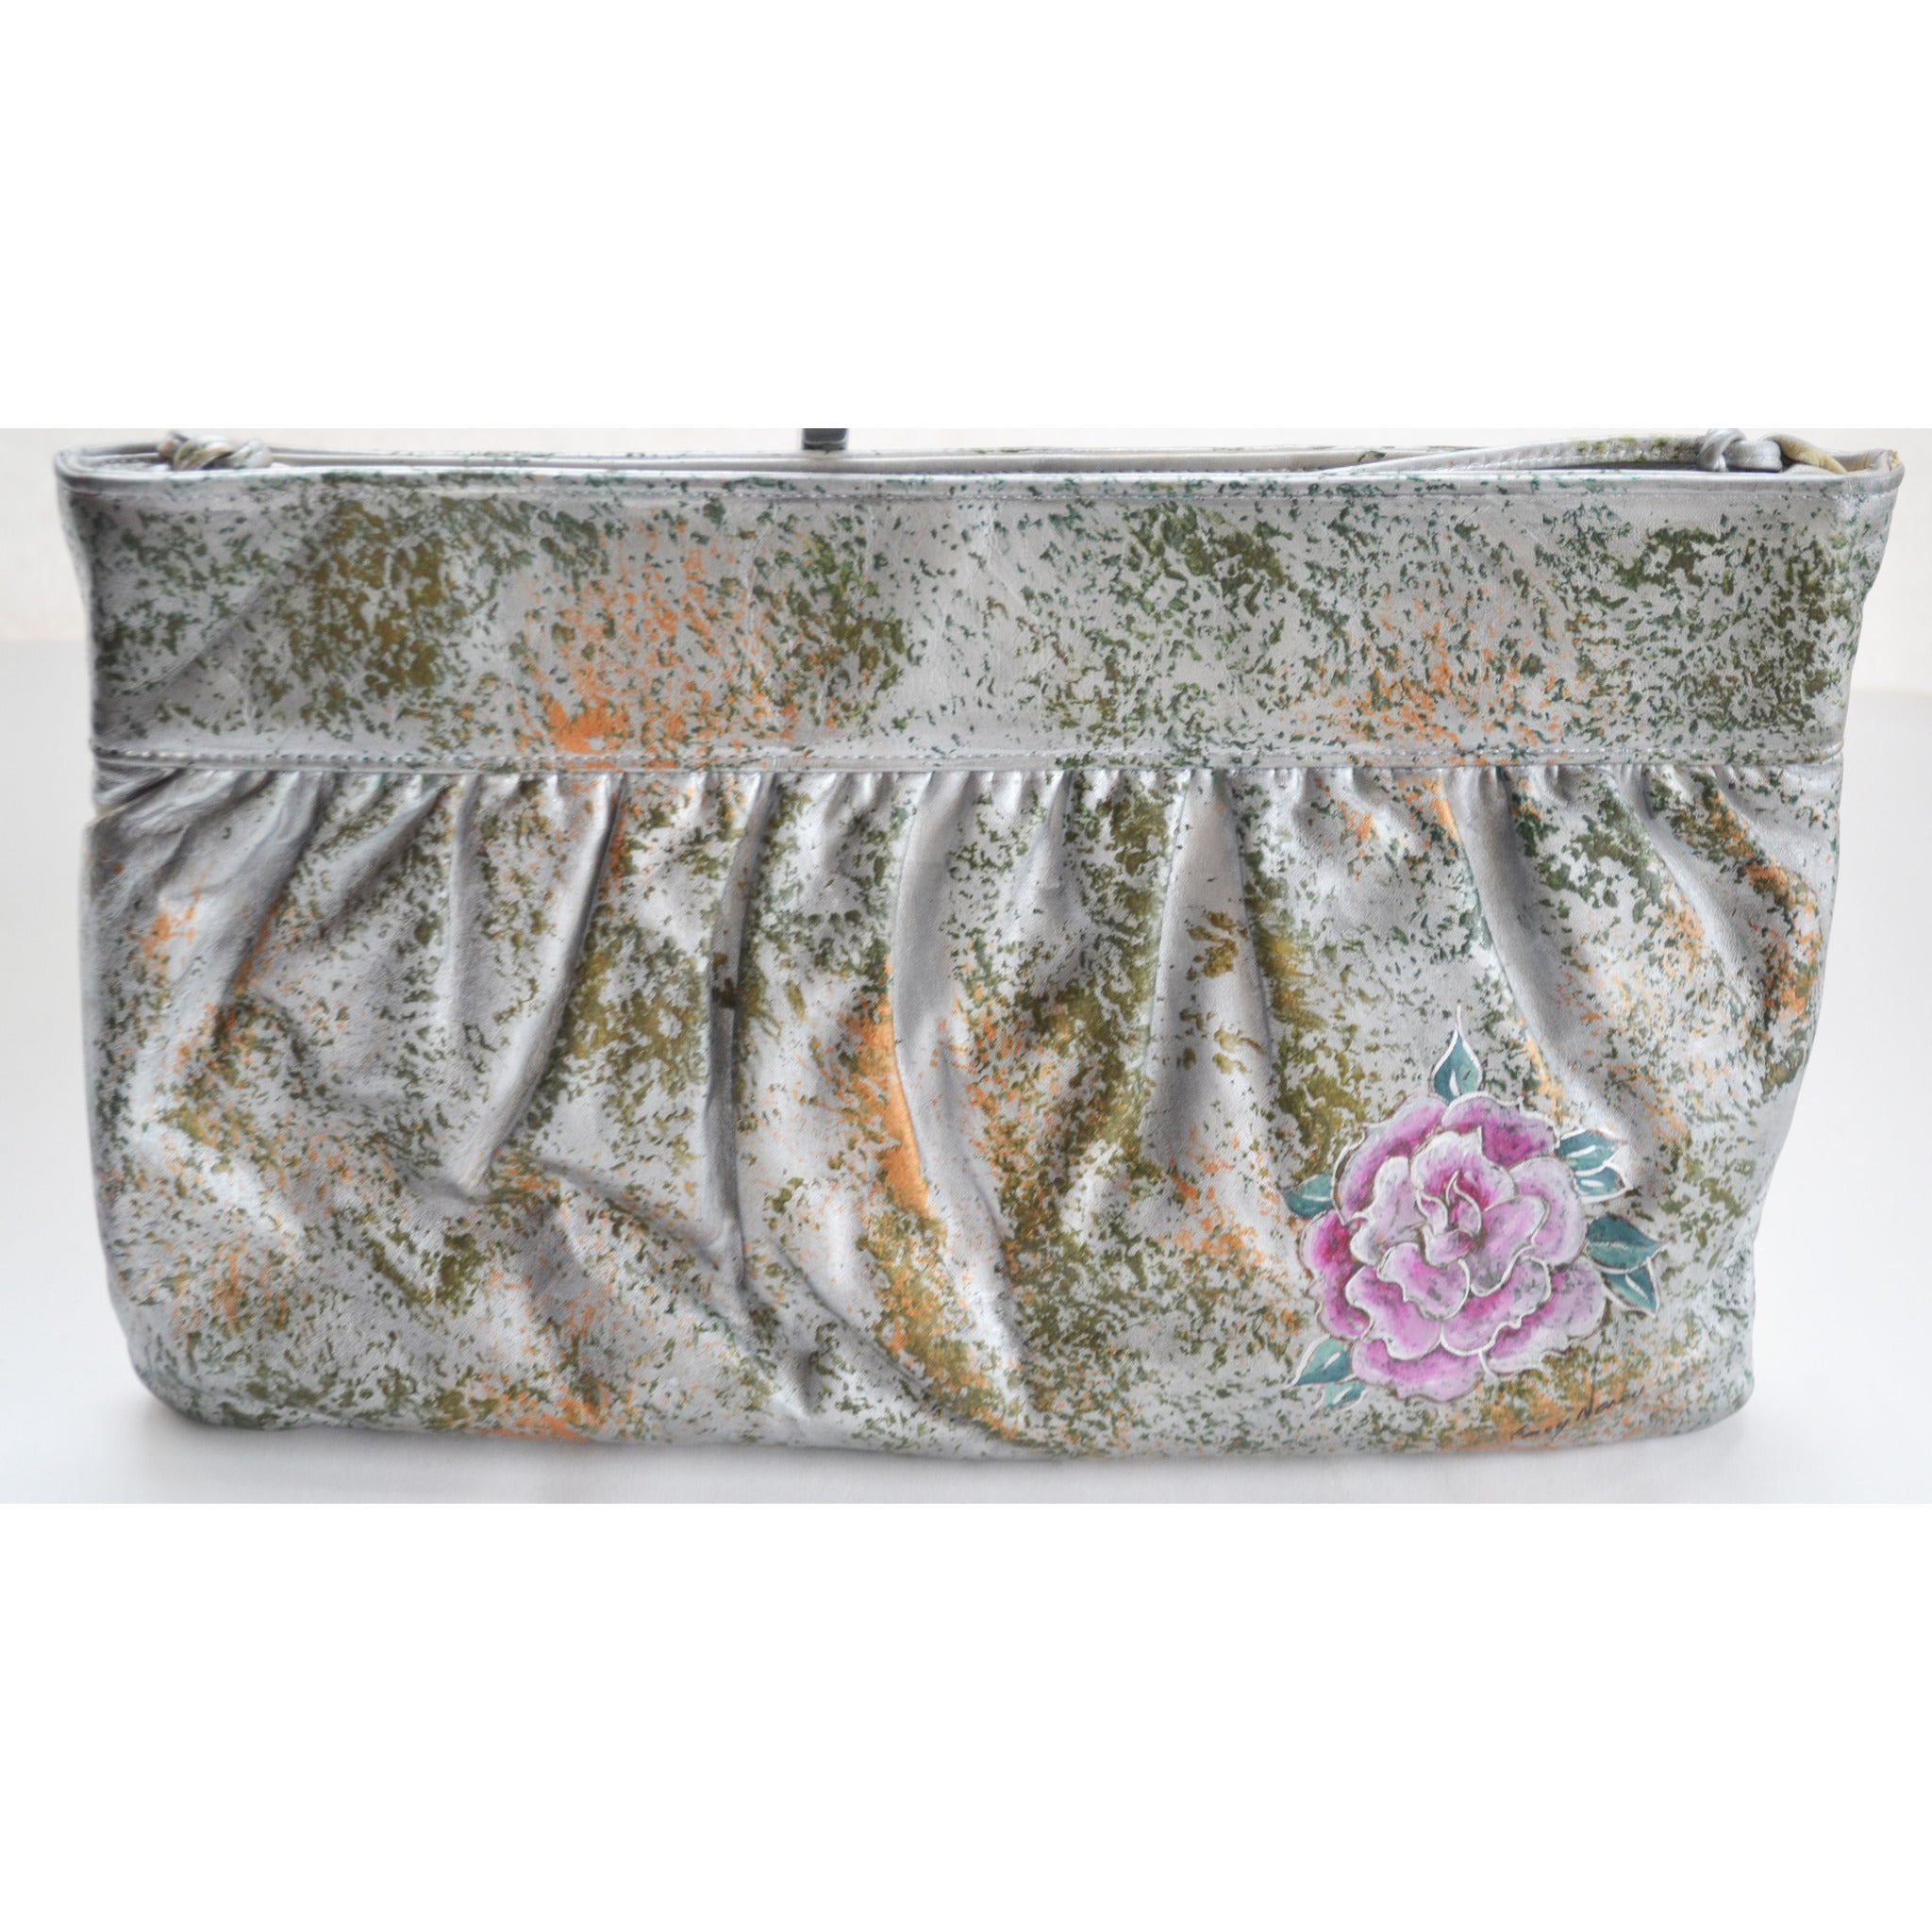 Vintage Silver Tone Painted Purse By Fancy Nancy - 1980's